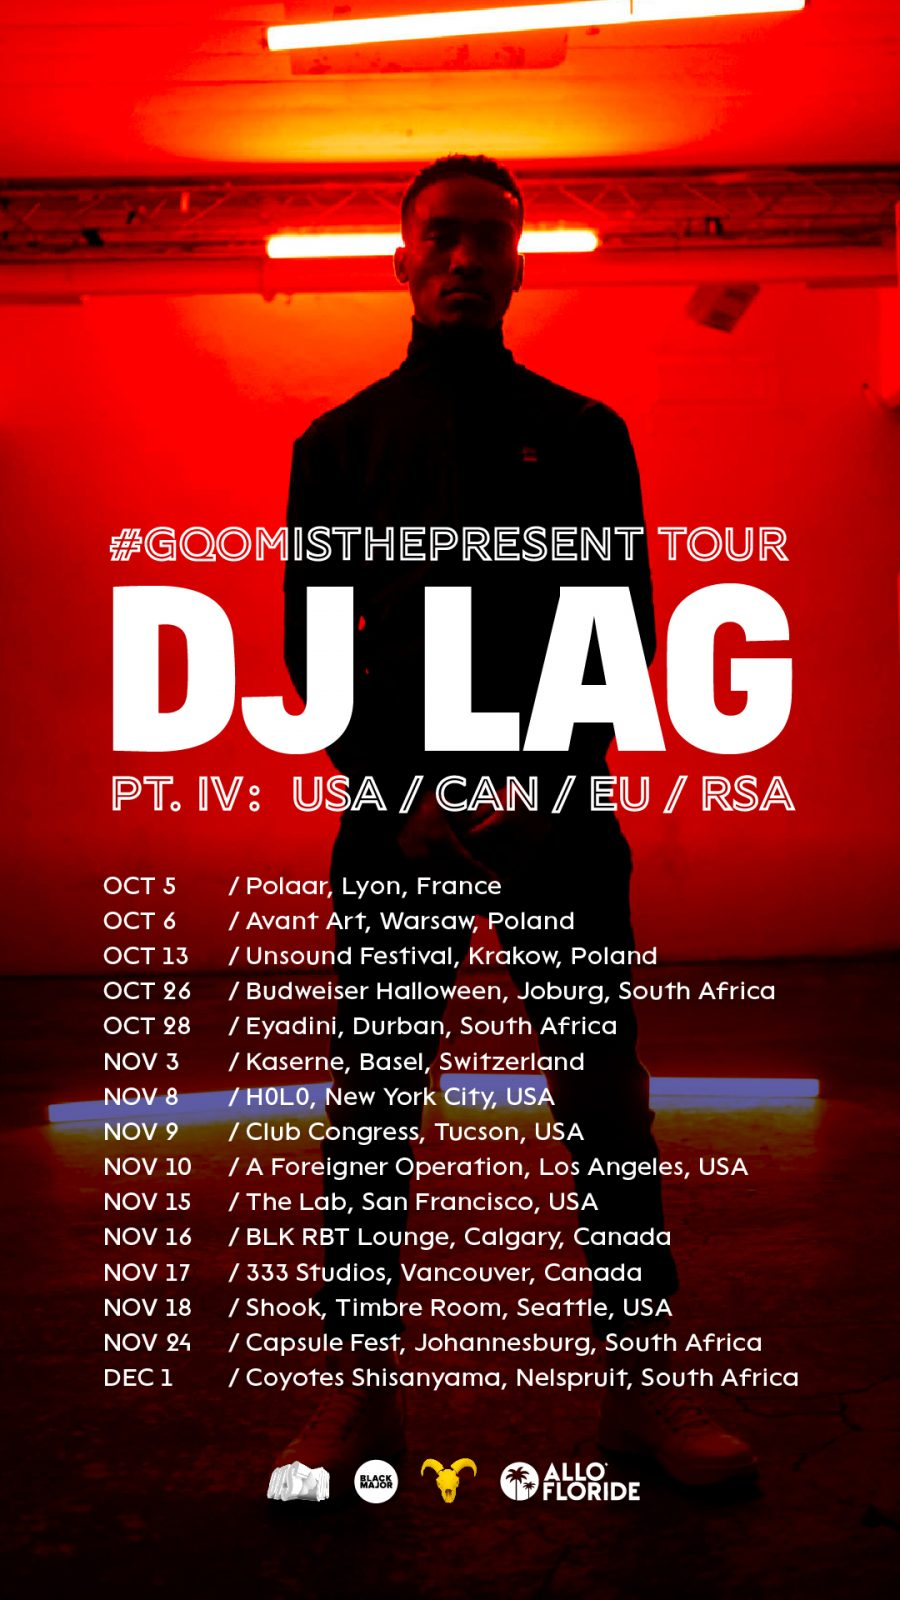 dj lag part 4 tour